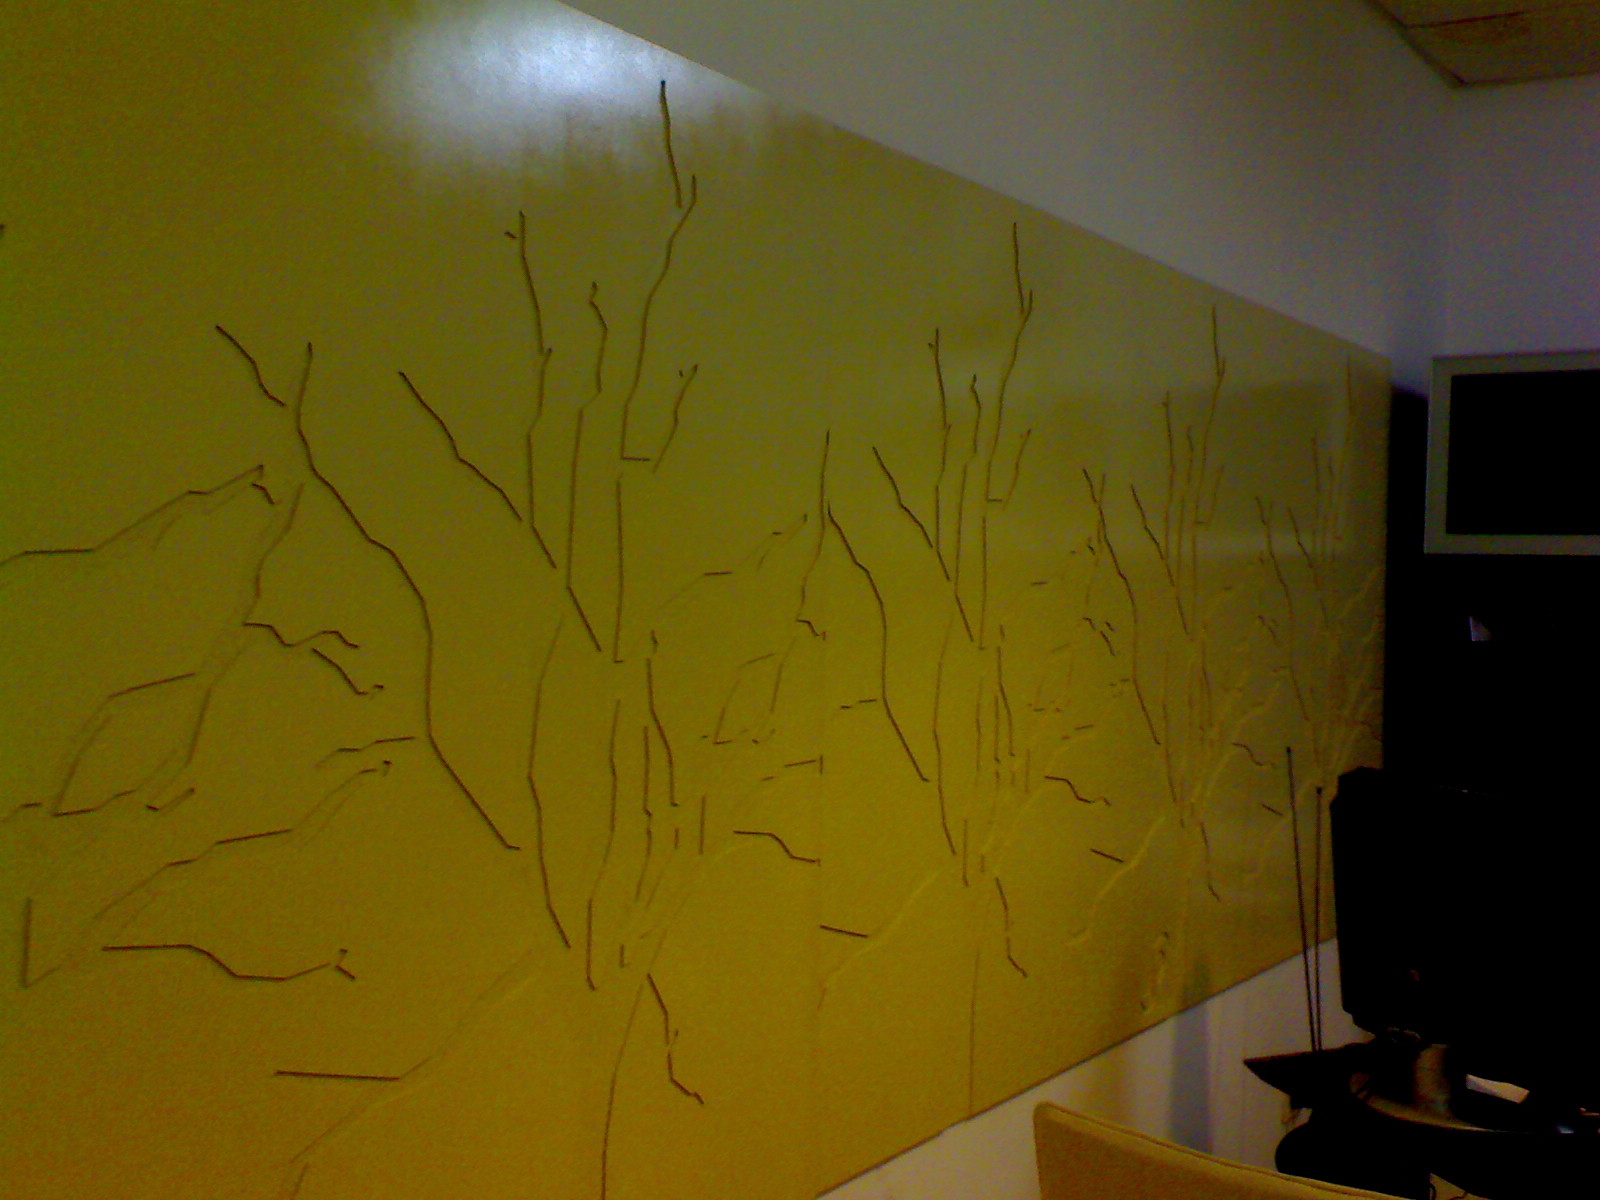 Amazing Mdf Carved Decorative Wall Panel Illustration - The Wall Art ...